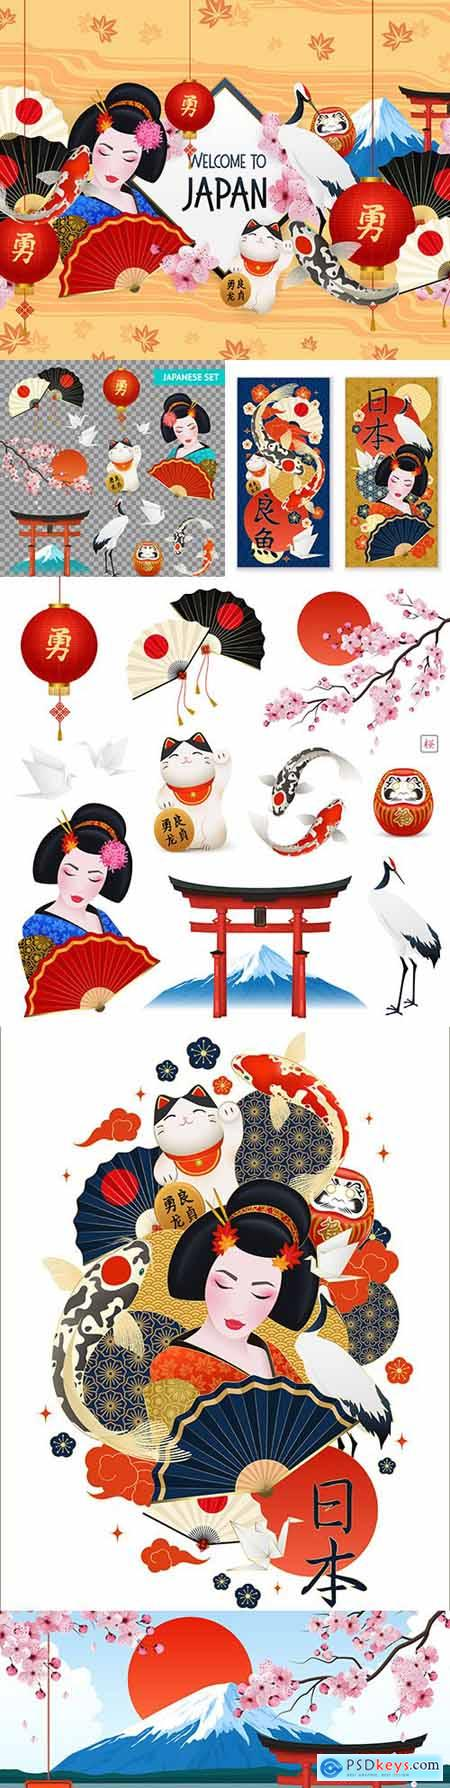 Japanese geisha and set of Japanese national symbols